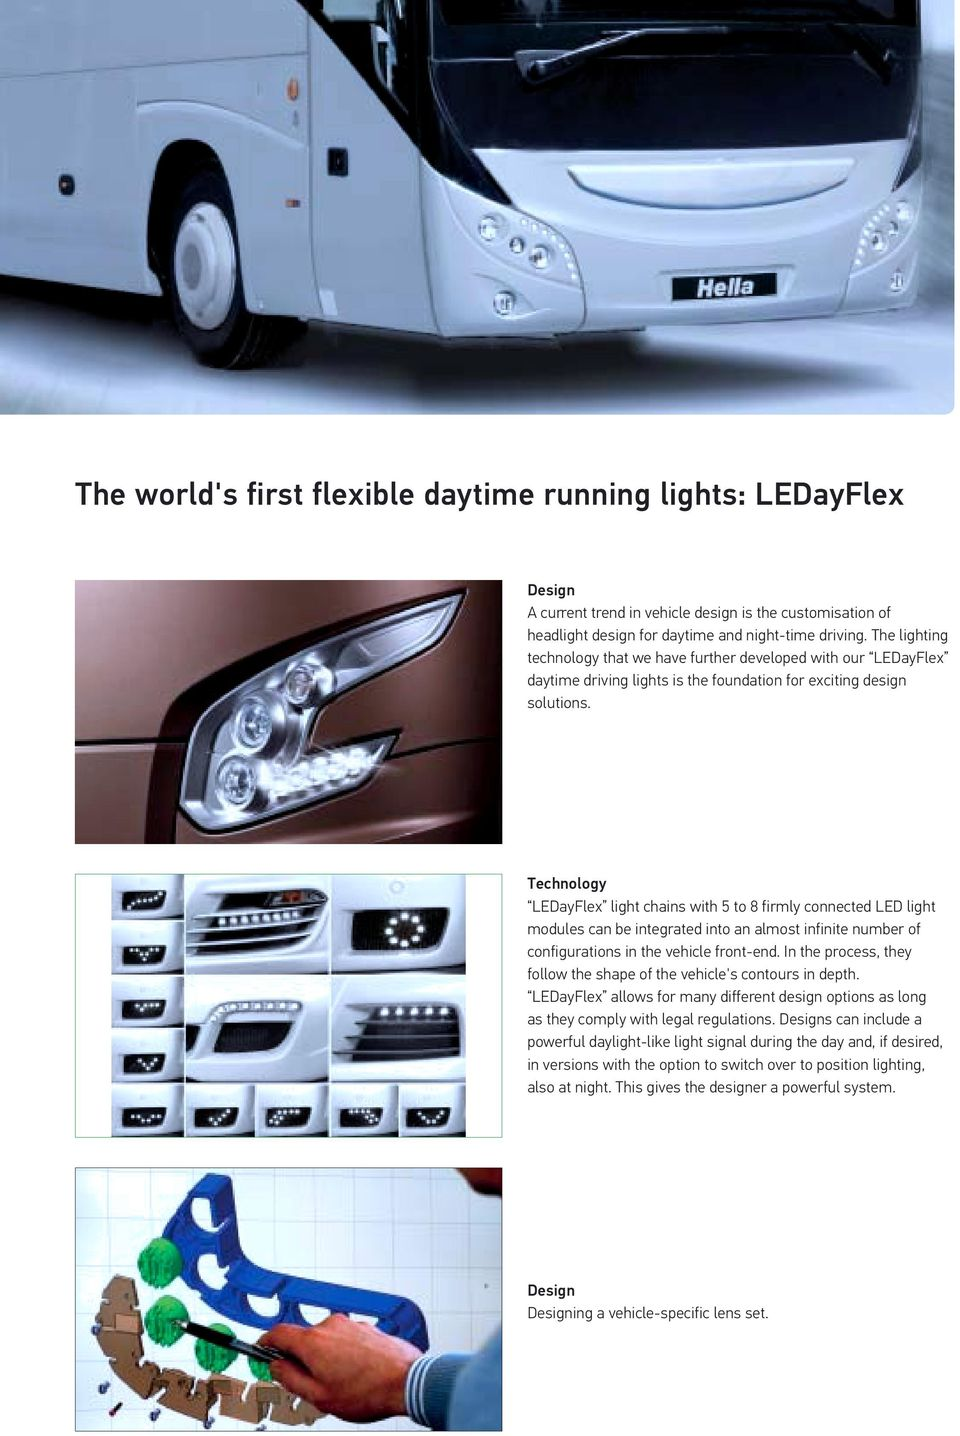 Technology LEDayFlex light chains with 5 to 8 firmly connected LED light modules can be integrated into an almost infinite number of configurations in the vehicle front-end.